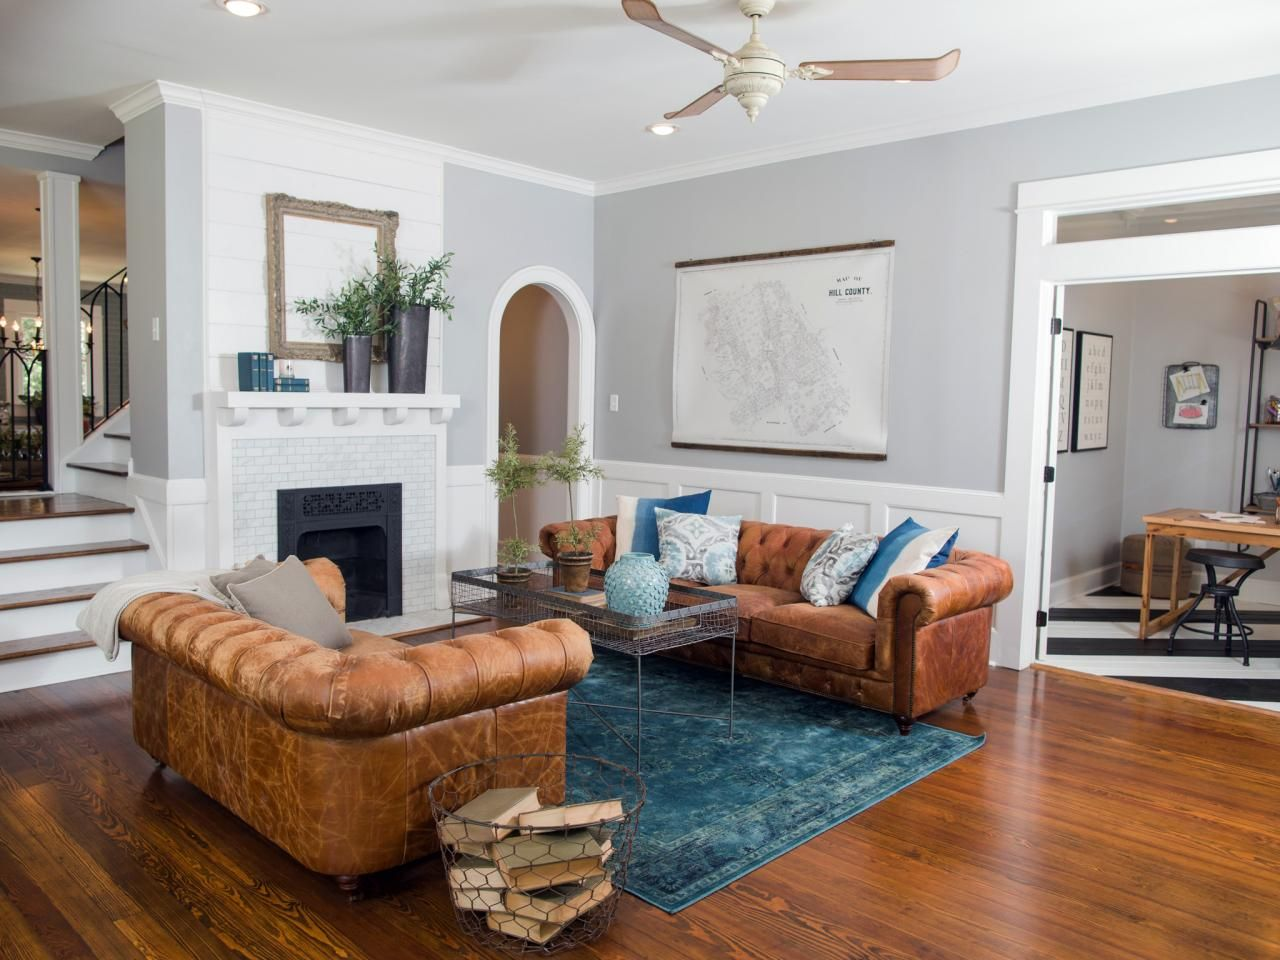 Find The Best Of Hgtv 39 S Fixer Upper With Chip And Joanna Gaines From Hgtv A Place Like Home